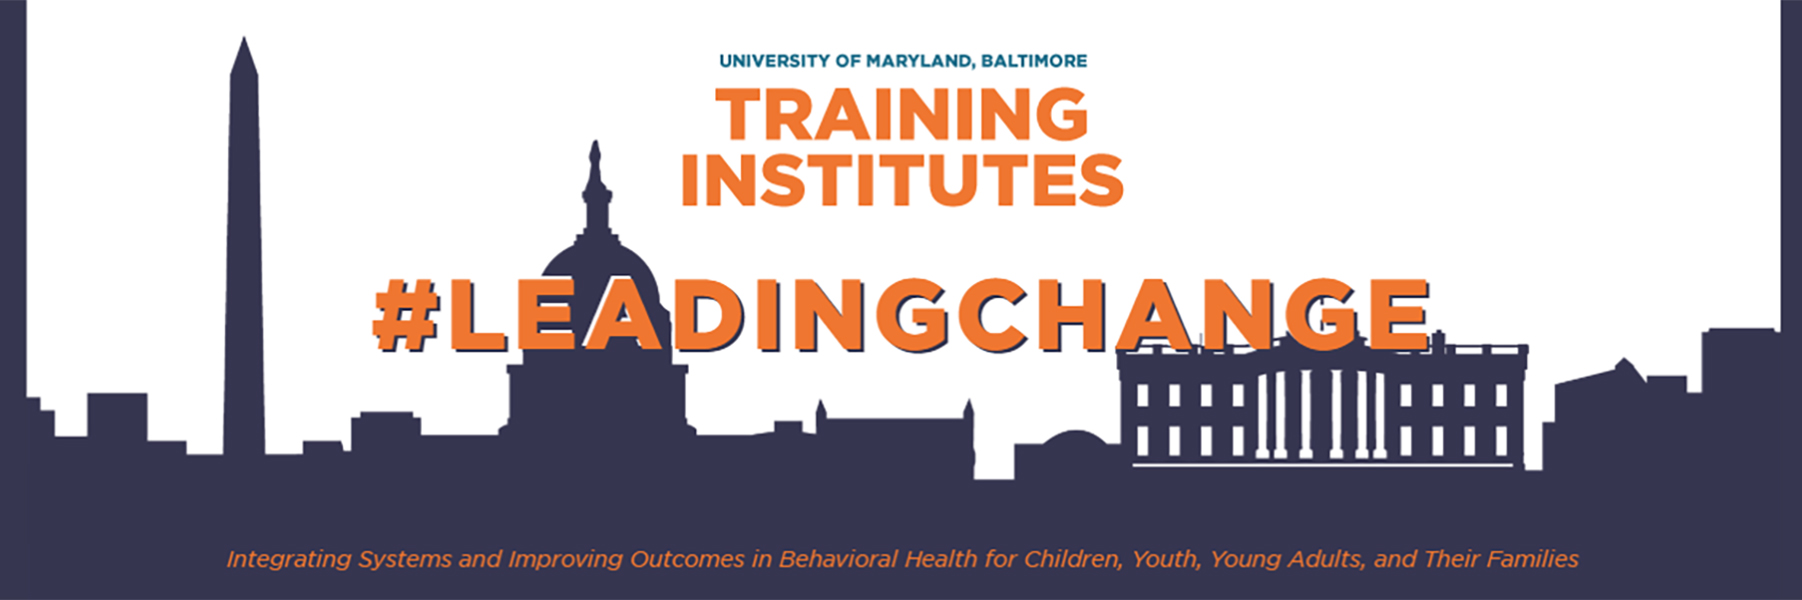 Banner image from 2018 Training Institutes showing name, hashtag, and slogan over Washington, D.C. skyline